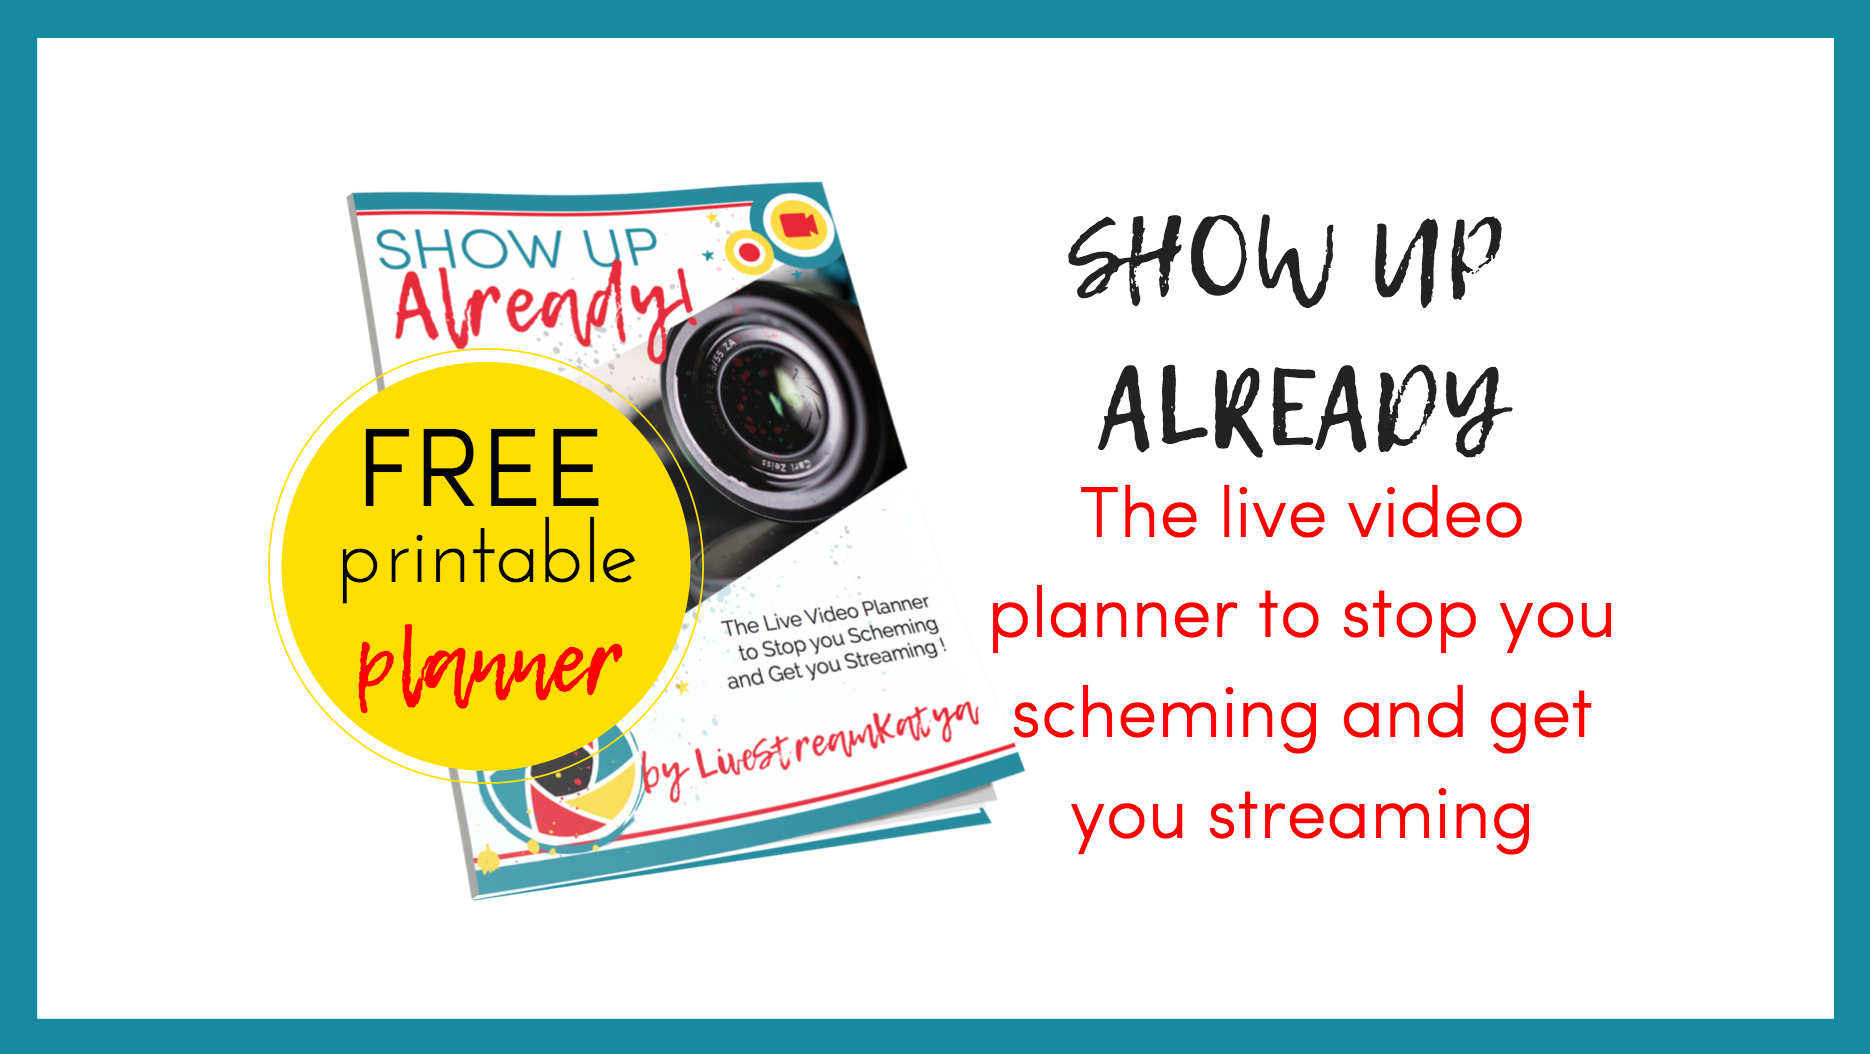 SHOW UP ALREADY: The Live Video Planner to Stop You Scheming and Get You Streaming